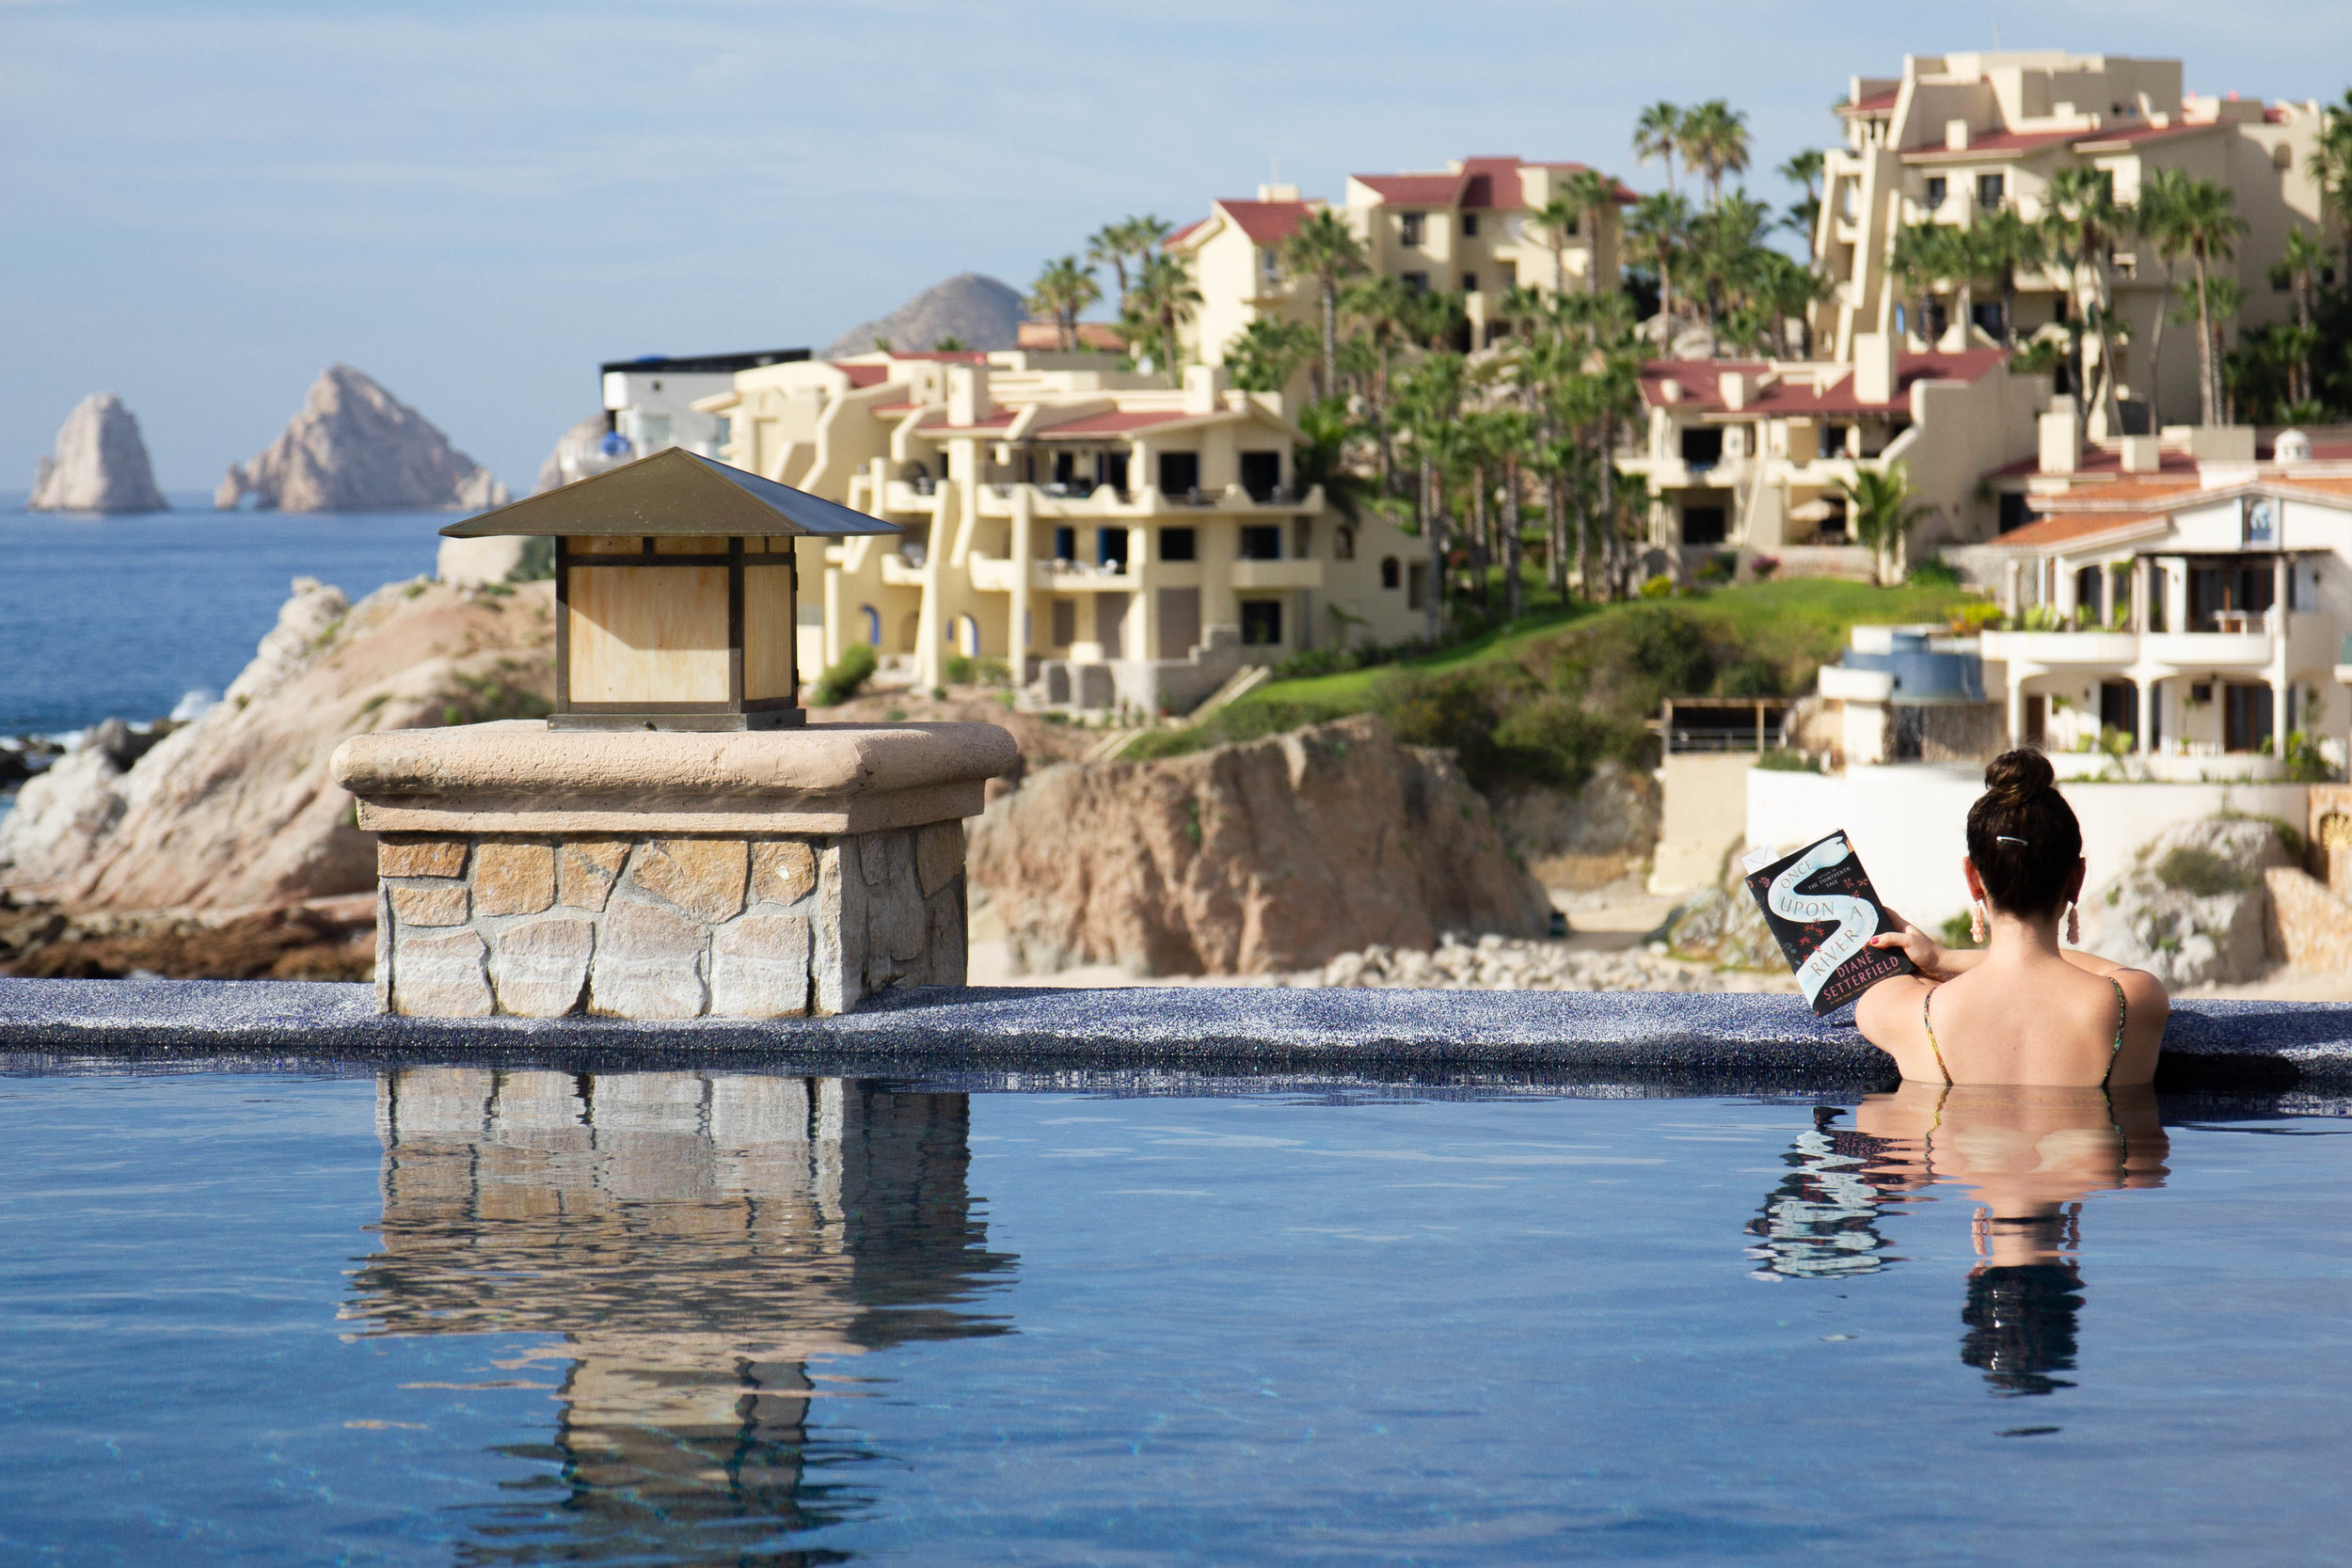 Reading Once Upon a River by Diane Setterfield at Sirena del Mar in Cabo, Mexico